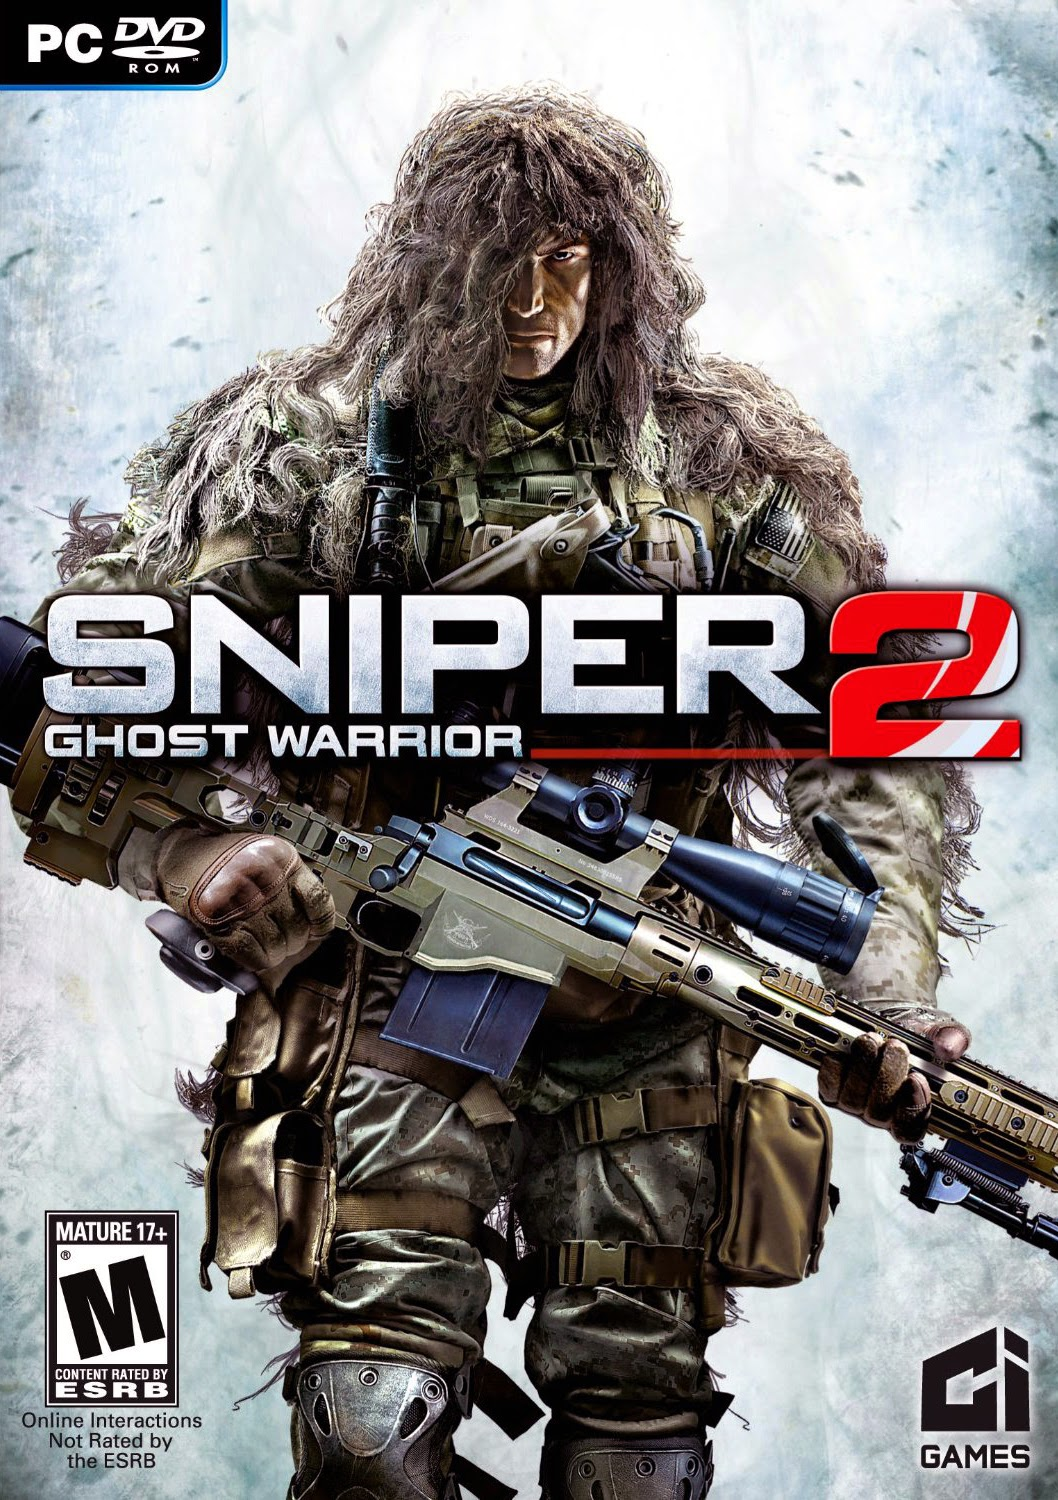 download sniper ghost warrior 2 siberian strike full version pc single link